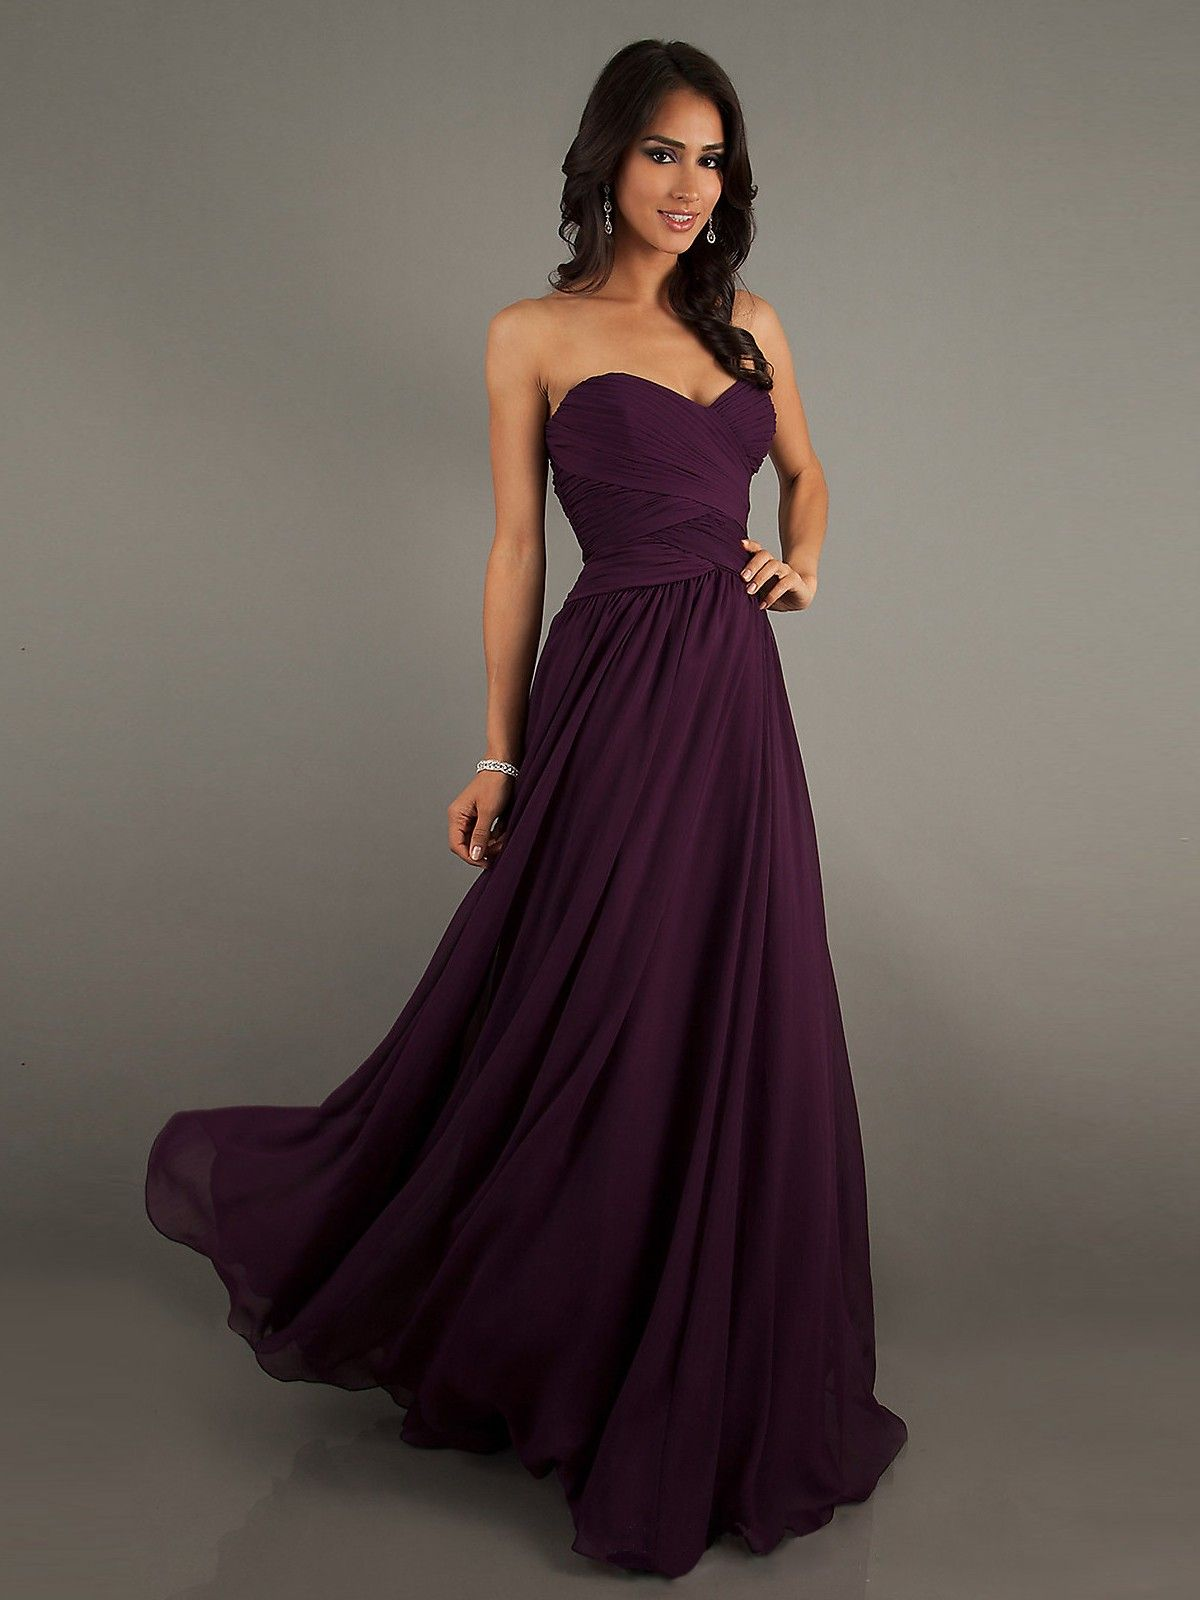 Eggplant Colored Chiffon Sweetheart Floor-Length Dress | Bodenlange ...